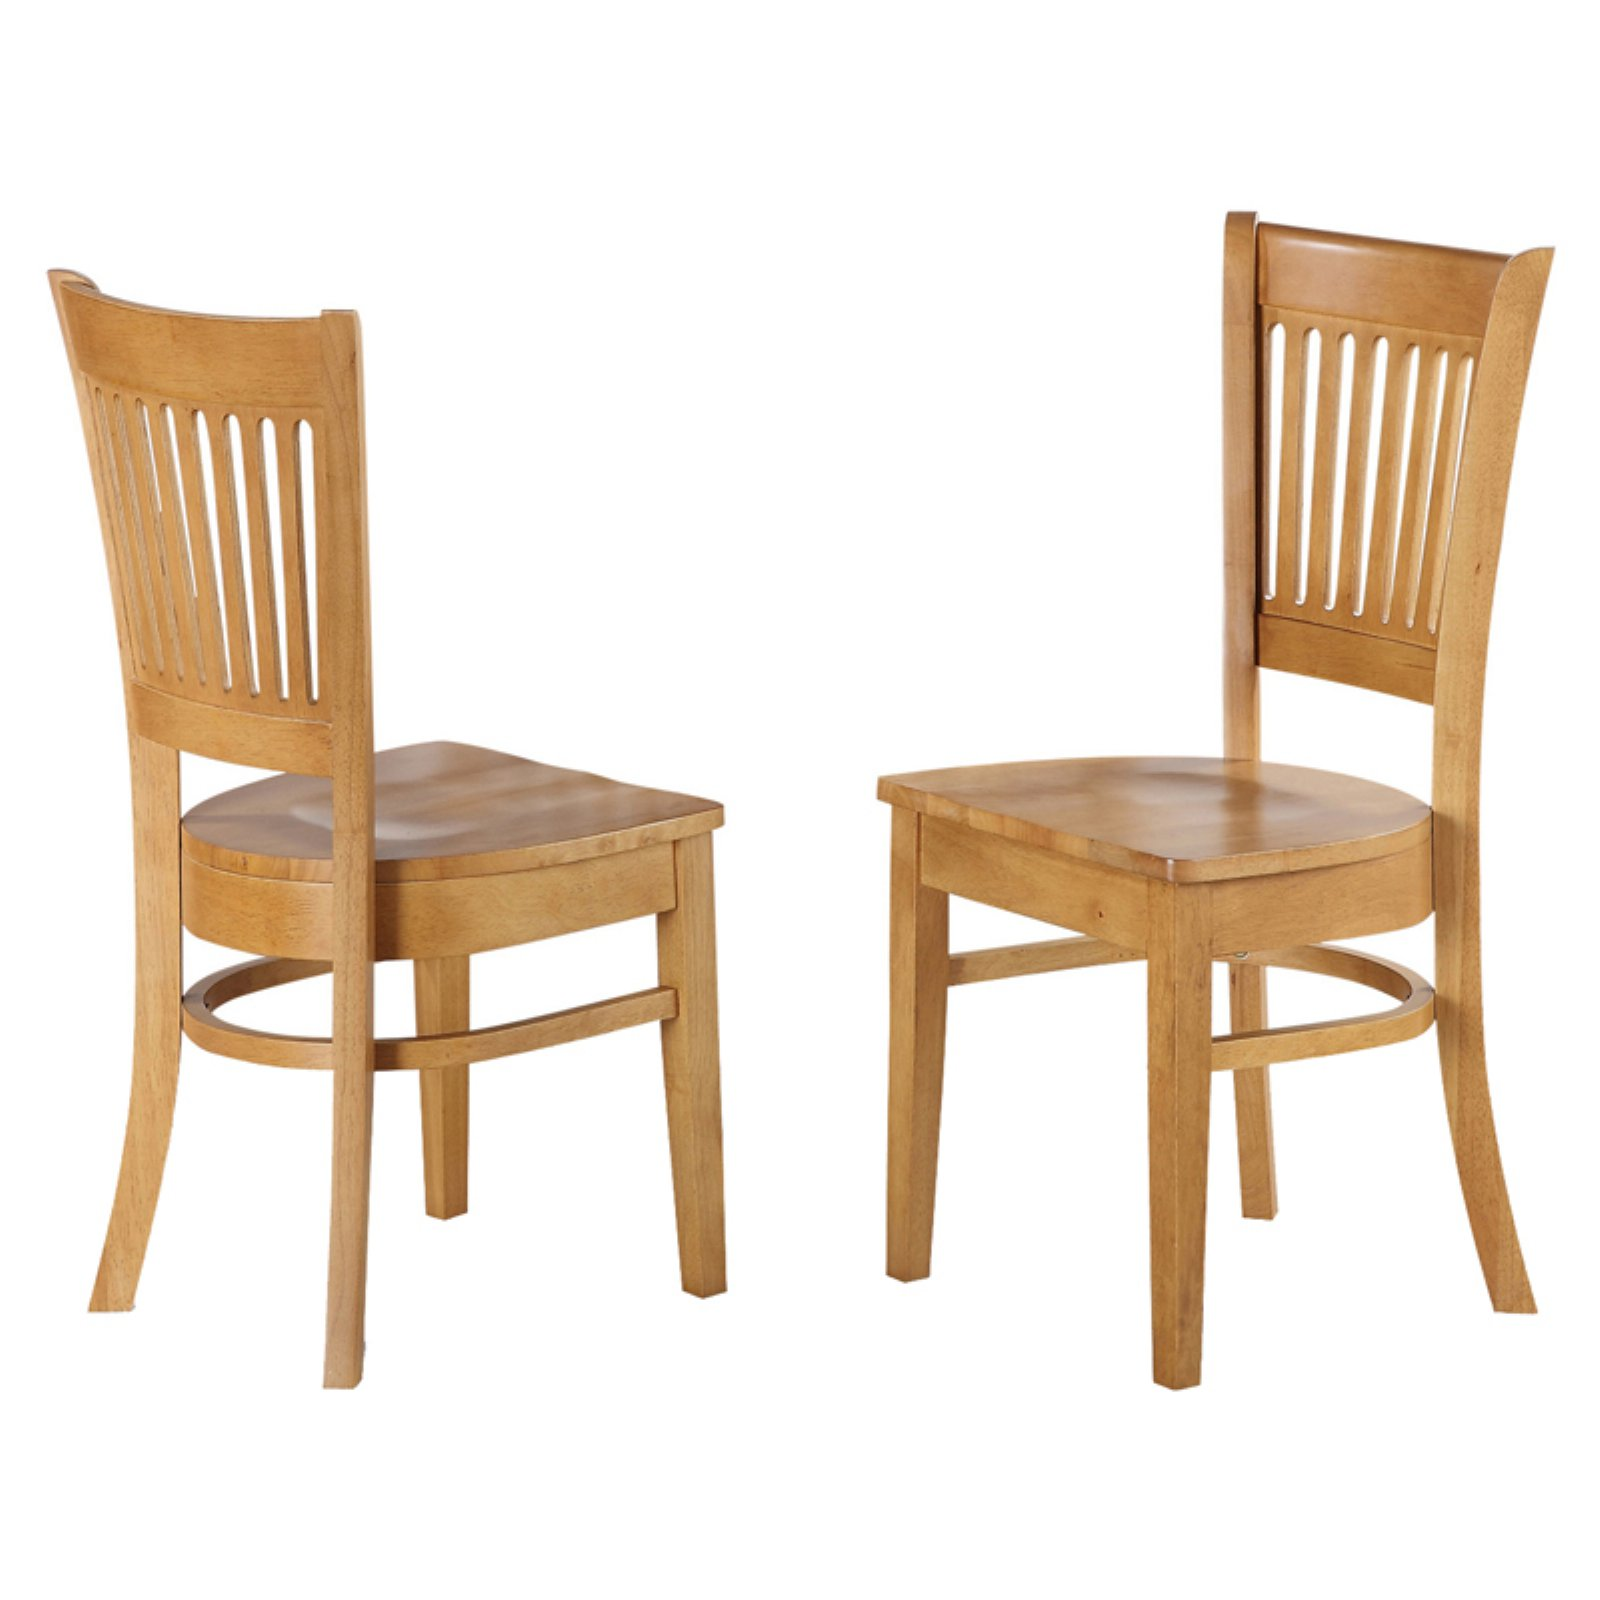 East West Furniture Vancouver Dining Chair with Wooden Seat - Set of 2